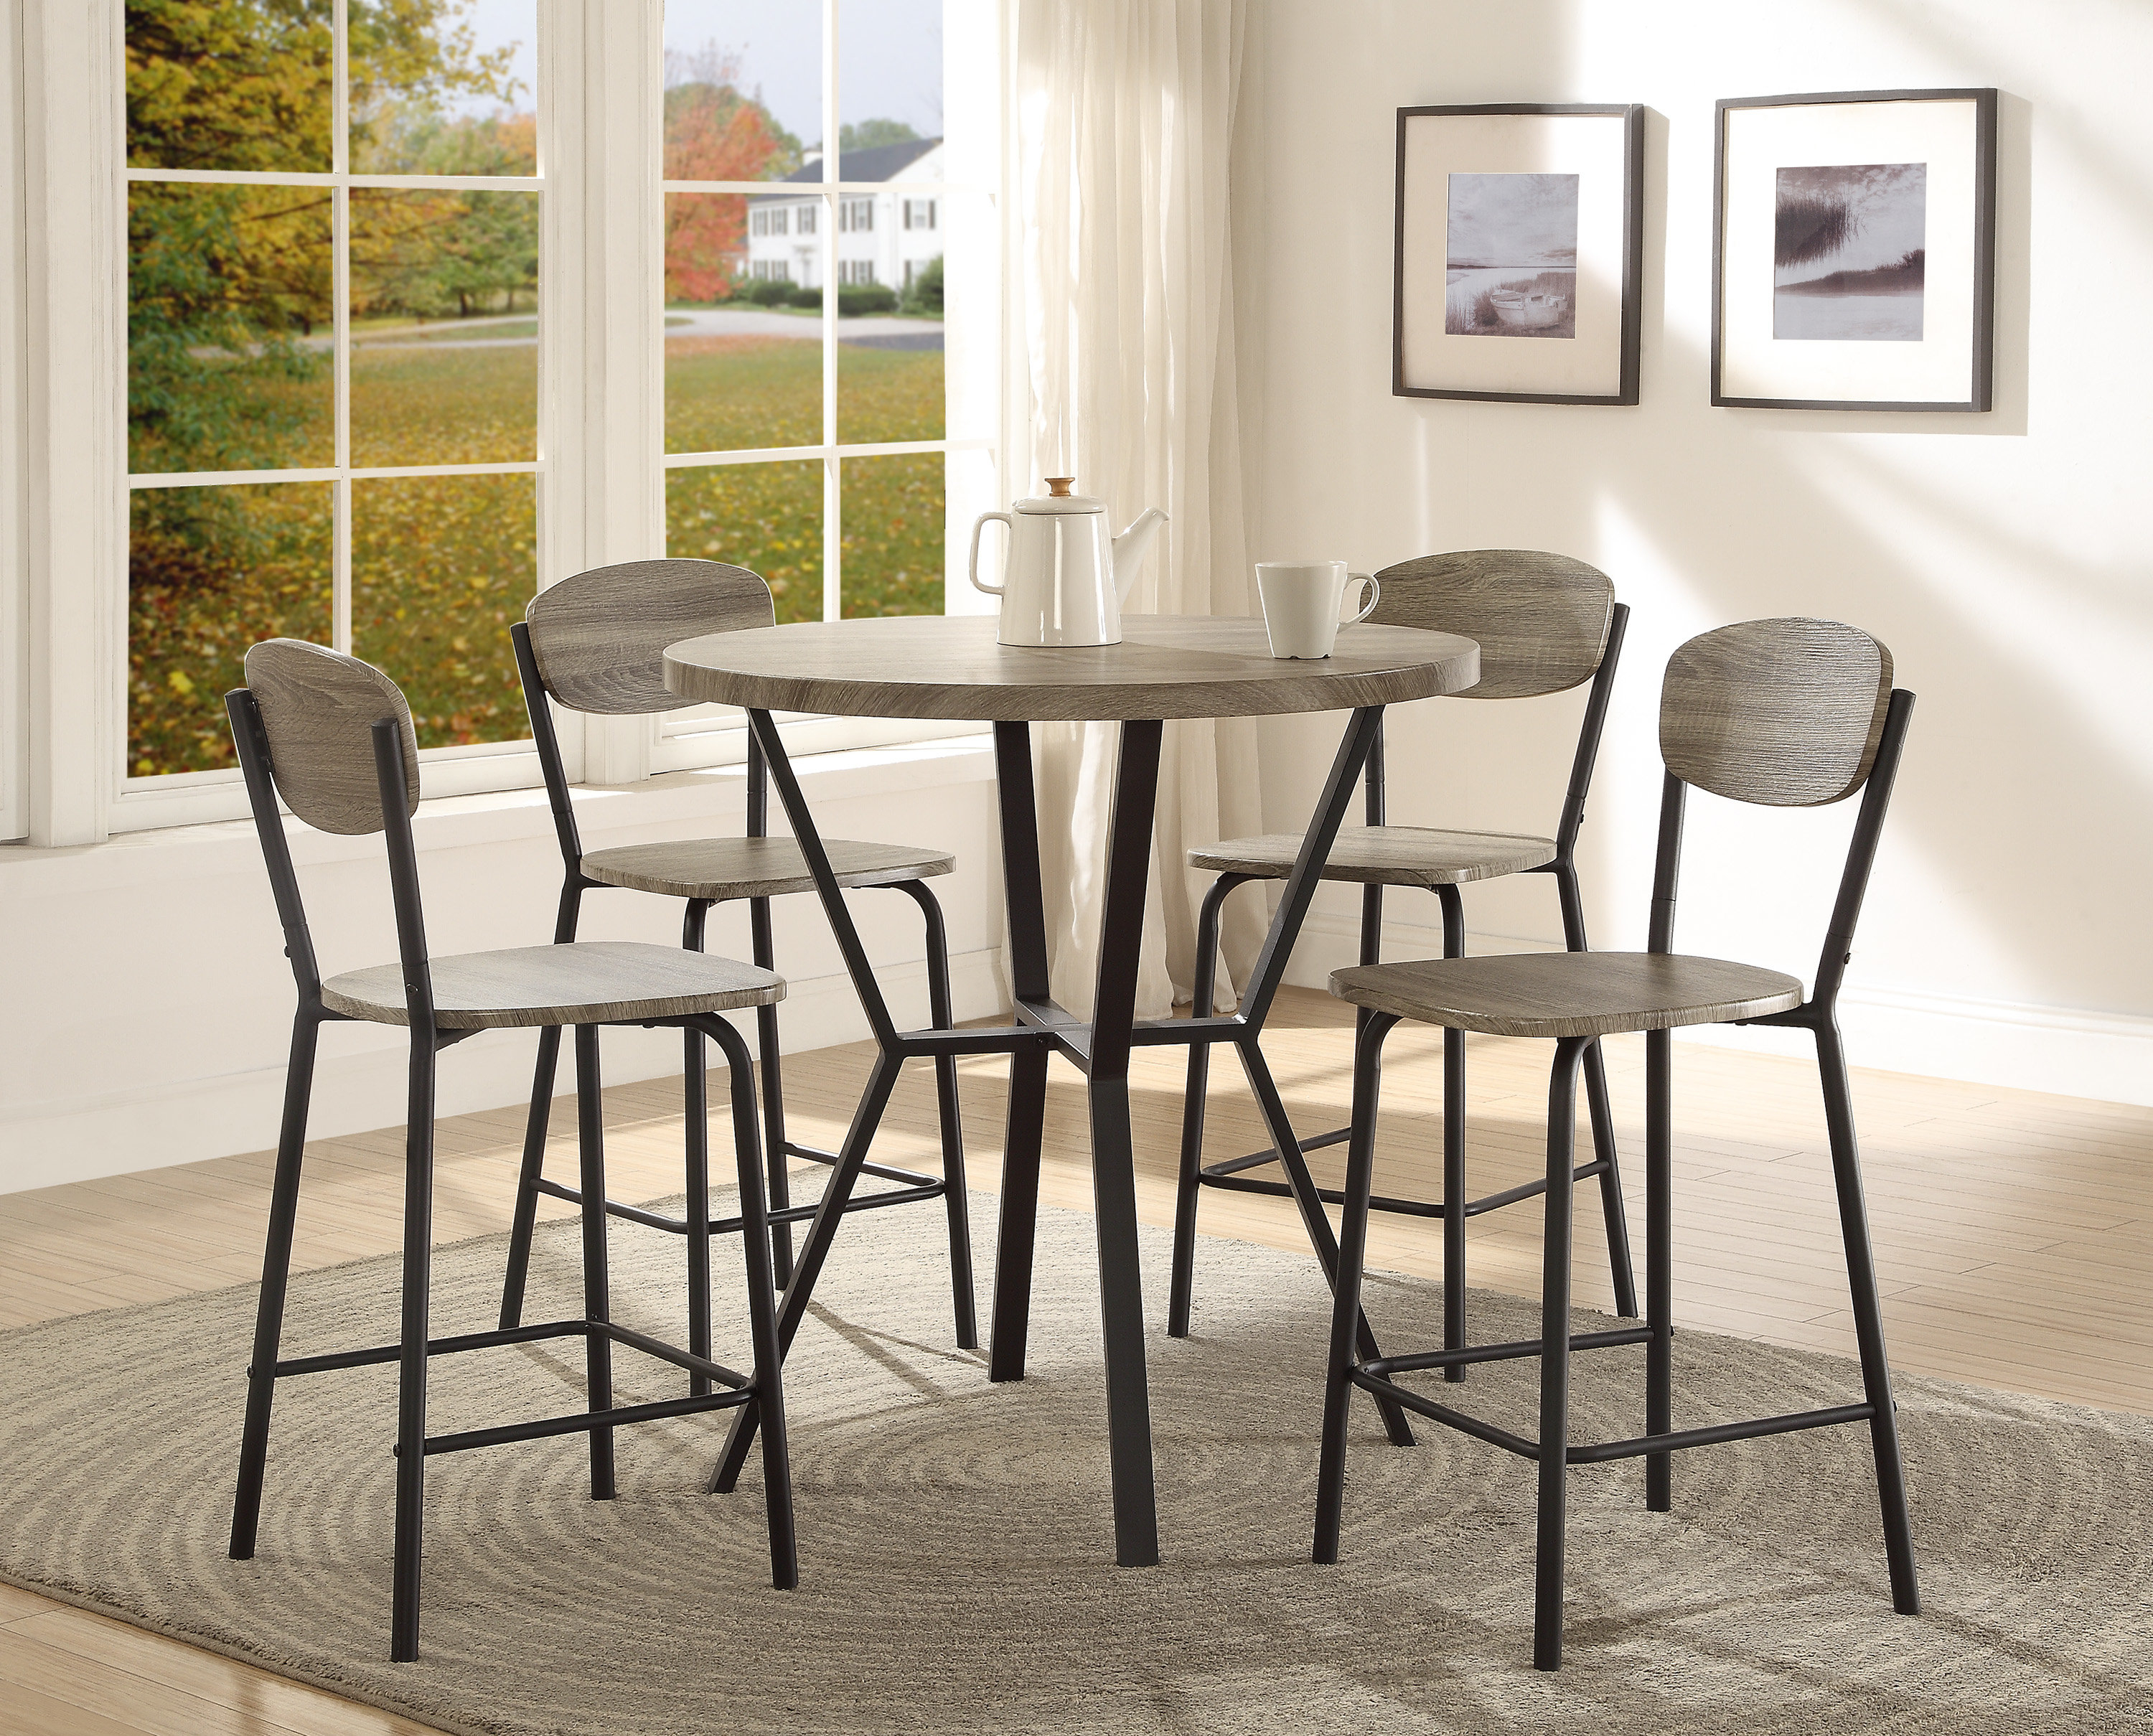 Millwood Pines Felicia 5 Piece Counter Height Dining Set & Reviews With Recent Middleport 5 Piece Dining Sets (View 5 of 25)